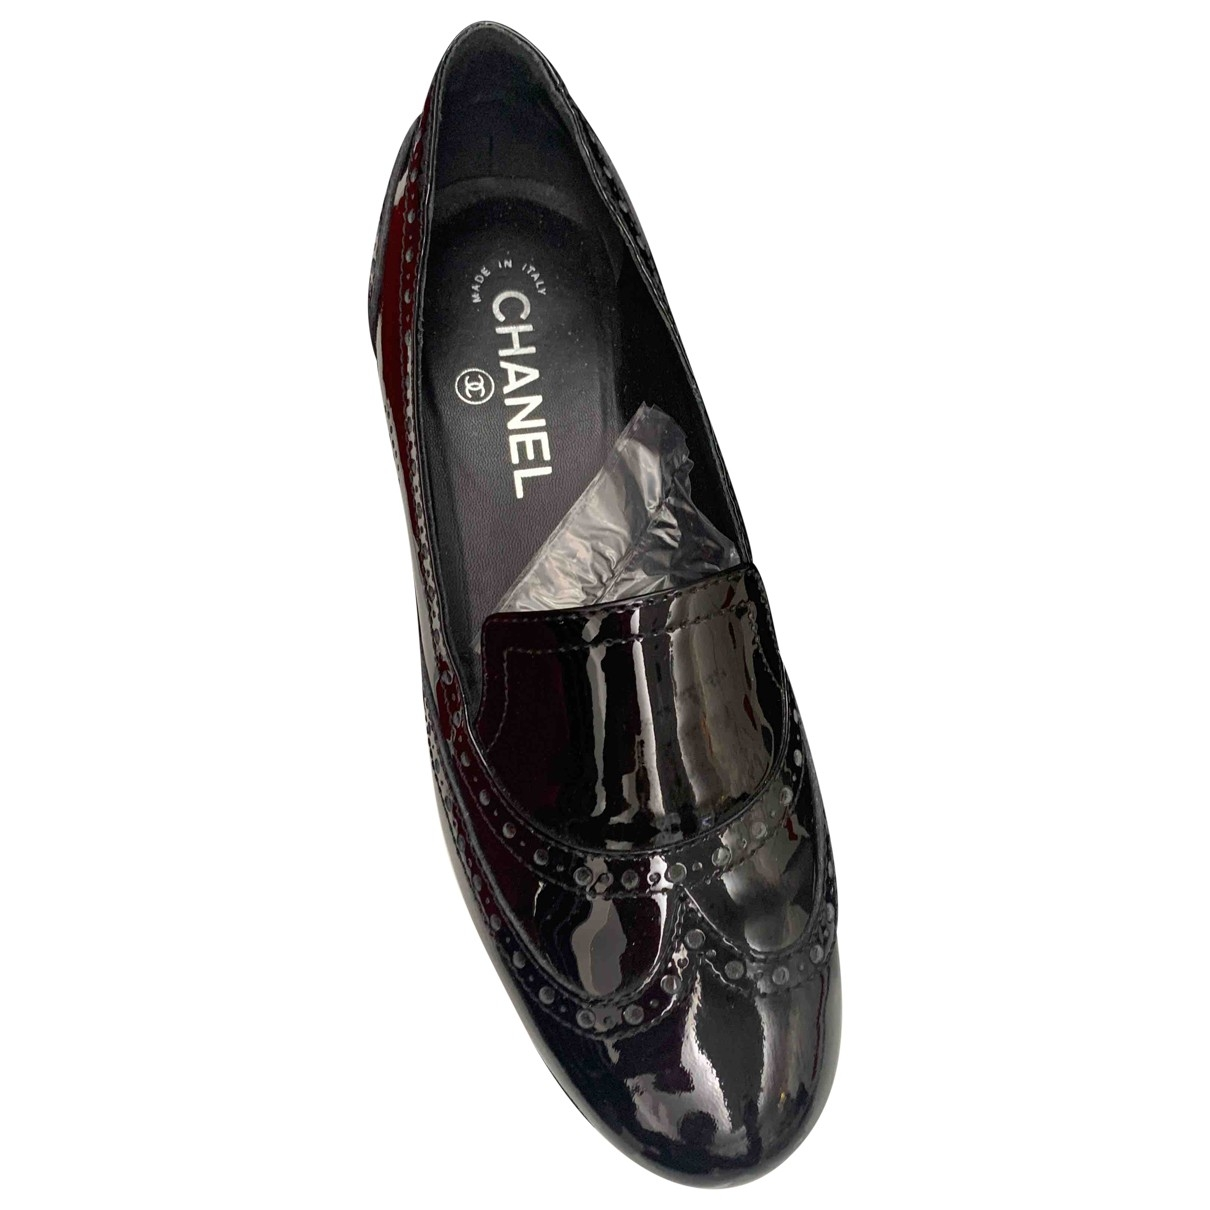 Chanel \N Black Patent leather Flats for Women 38 EU